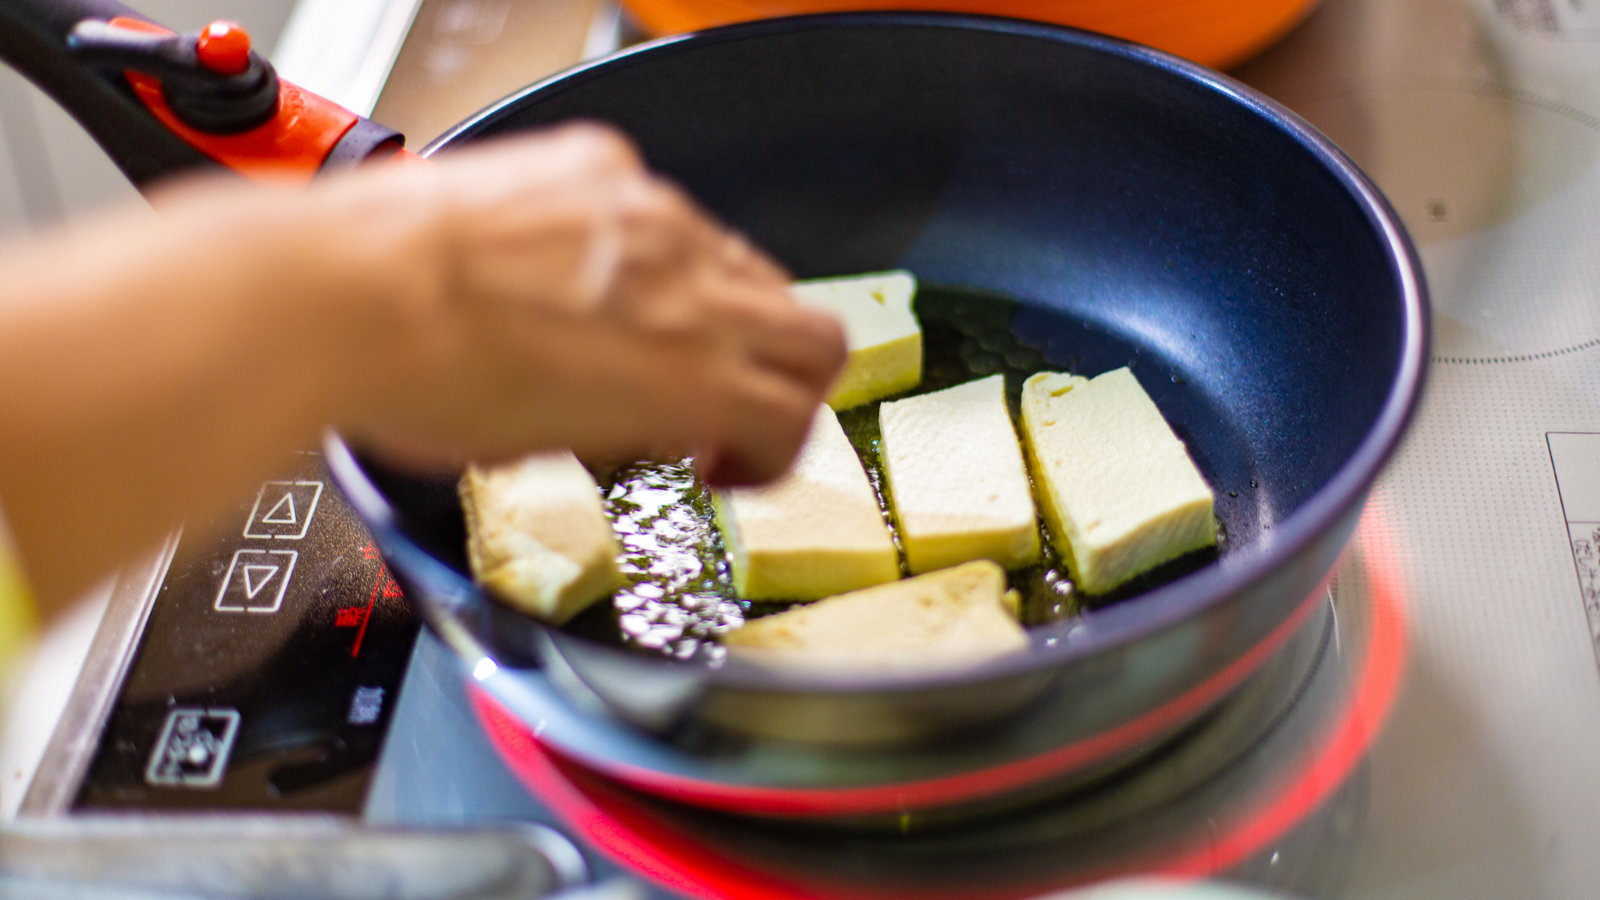 tofu being stir fried